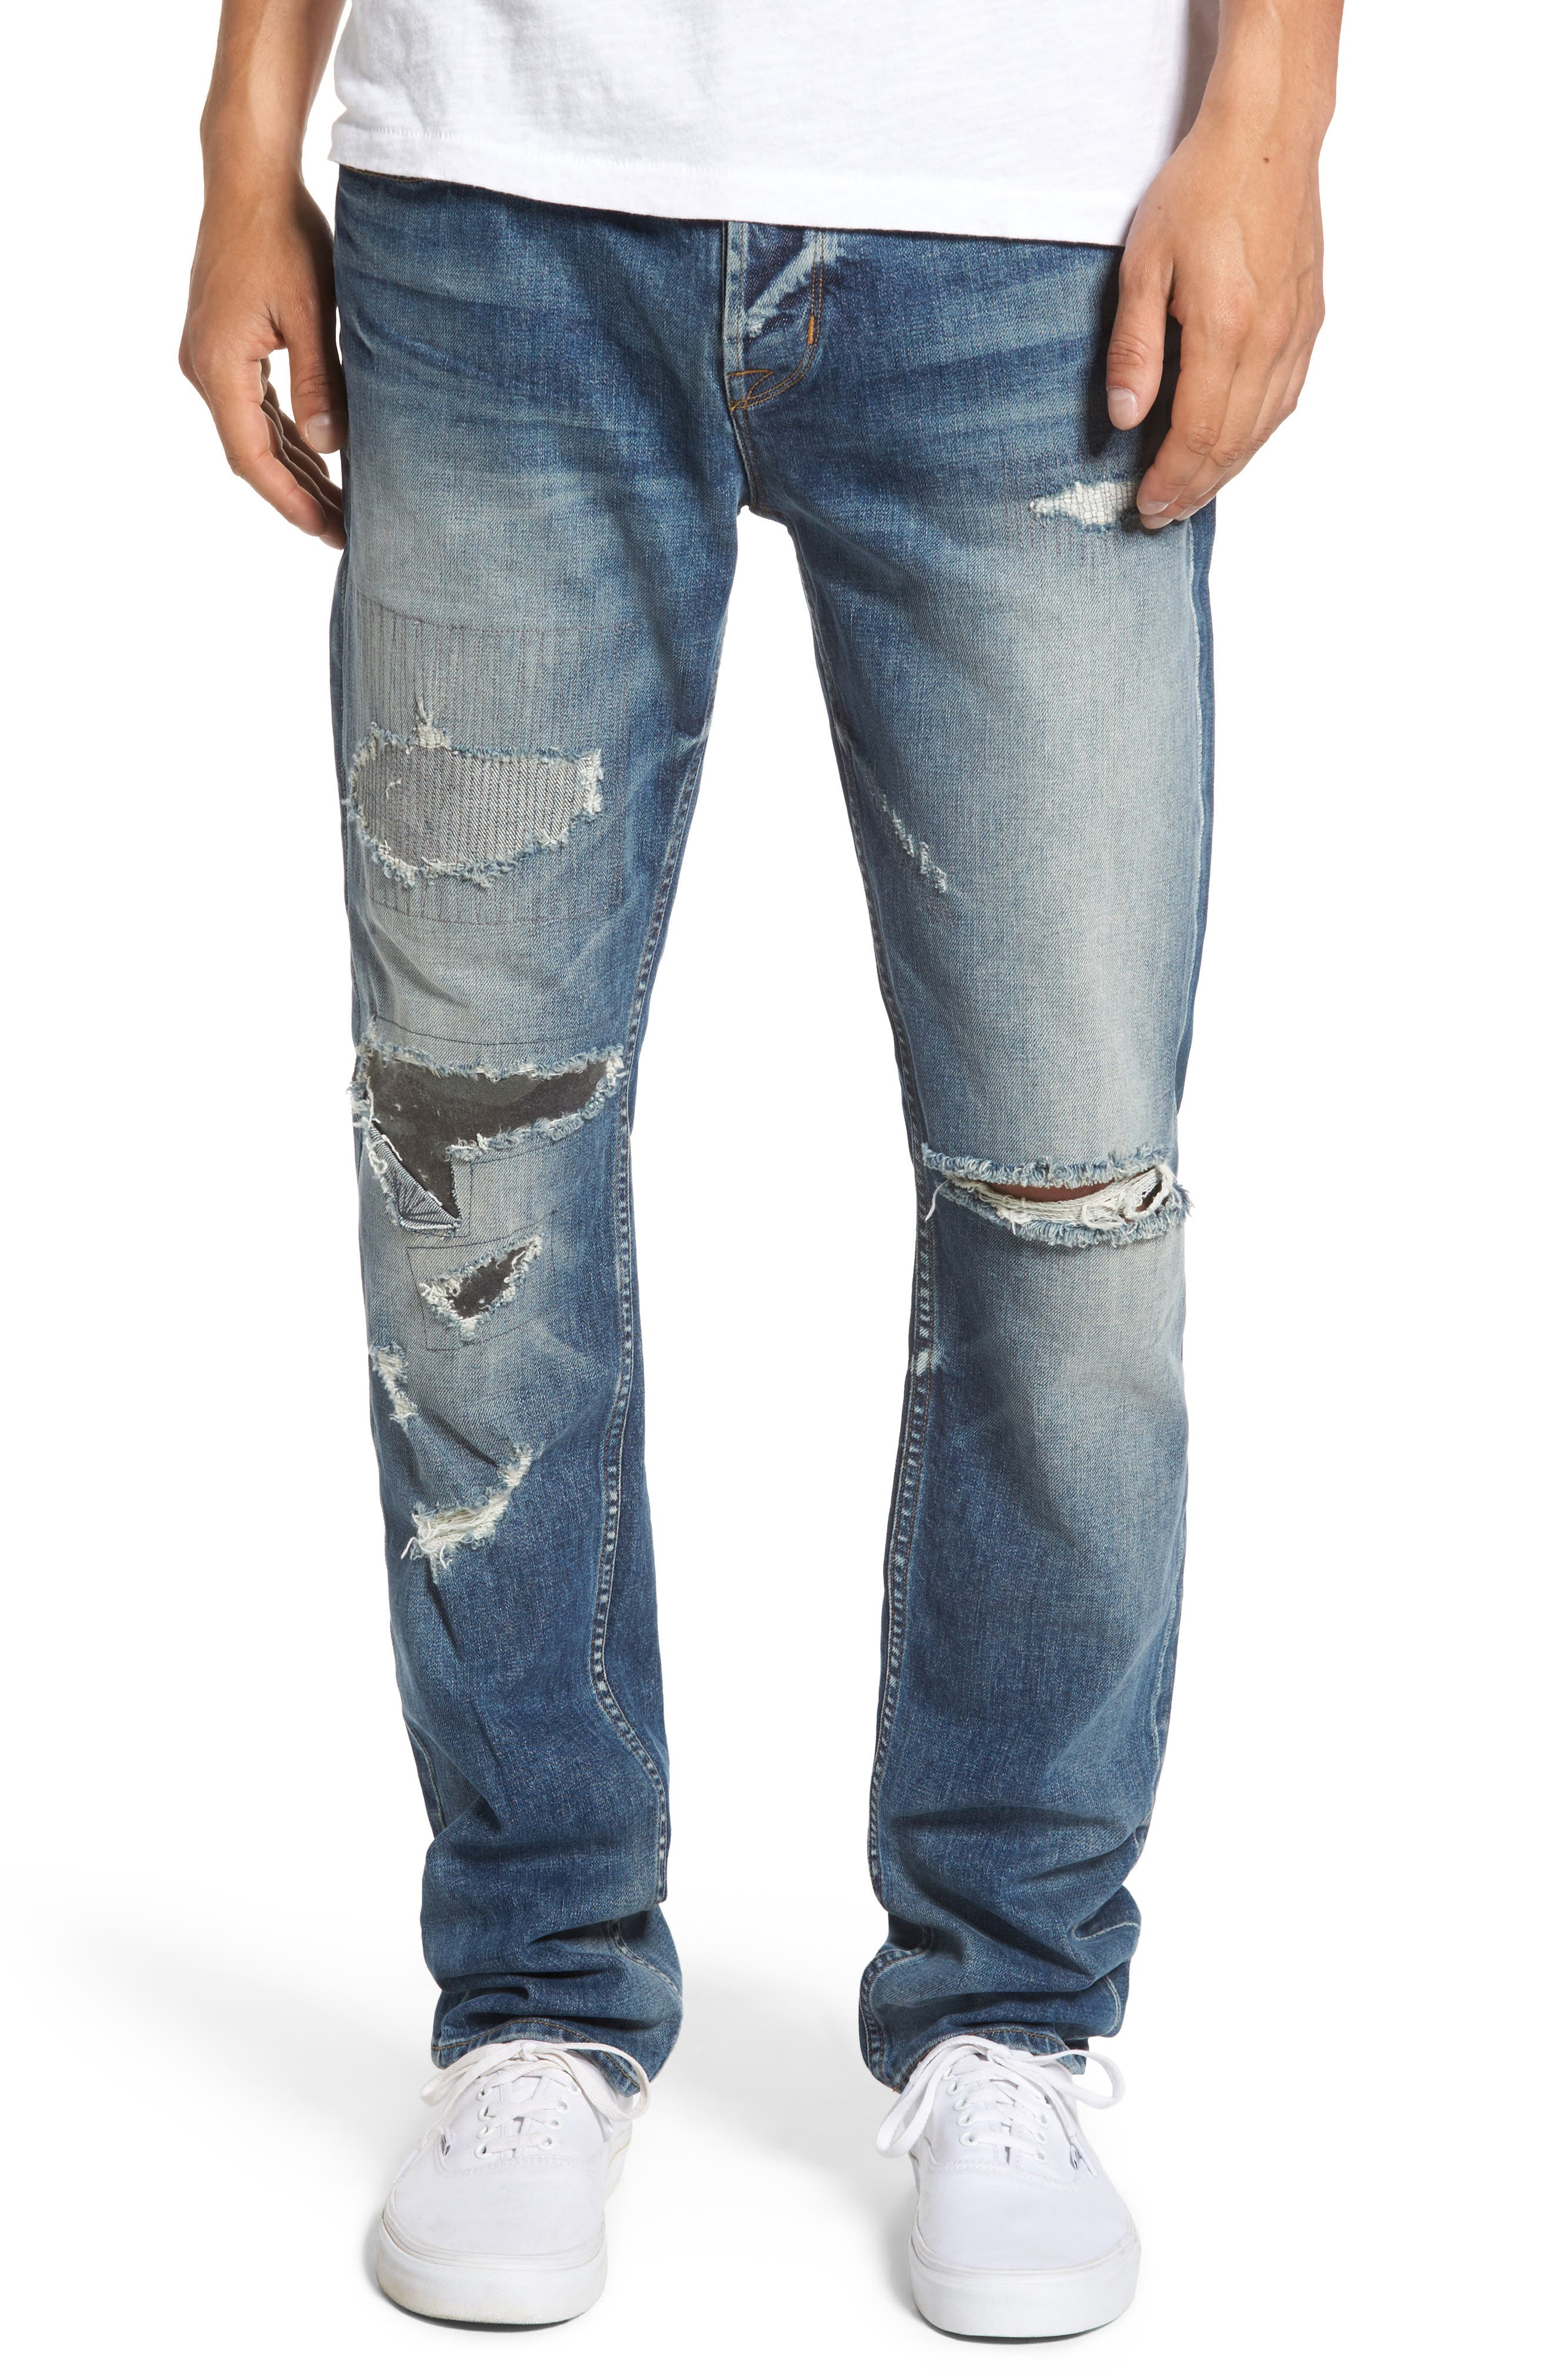 Sartor Slouchy Skinny Jeans,                         Main,                         color, Tail Gunner